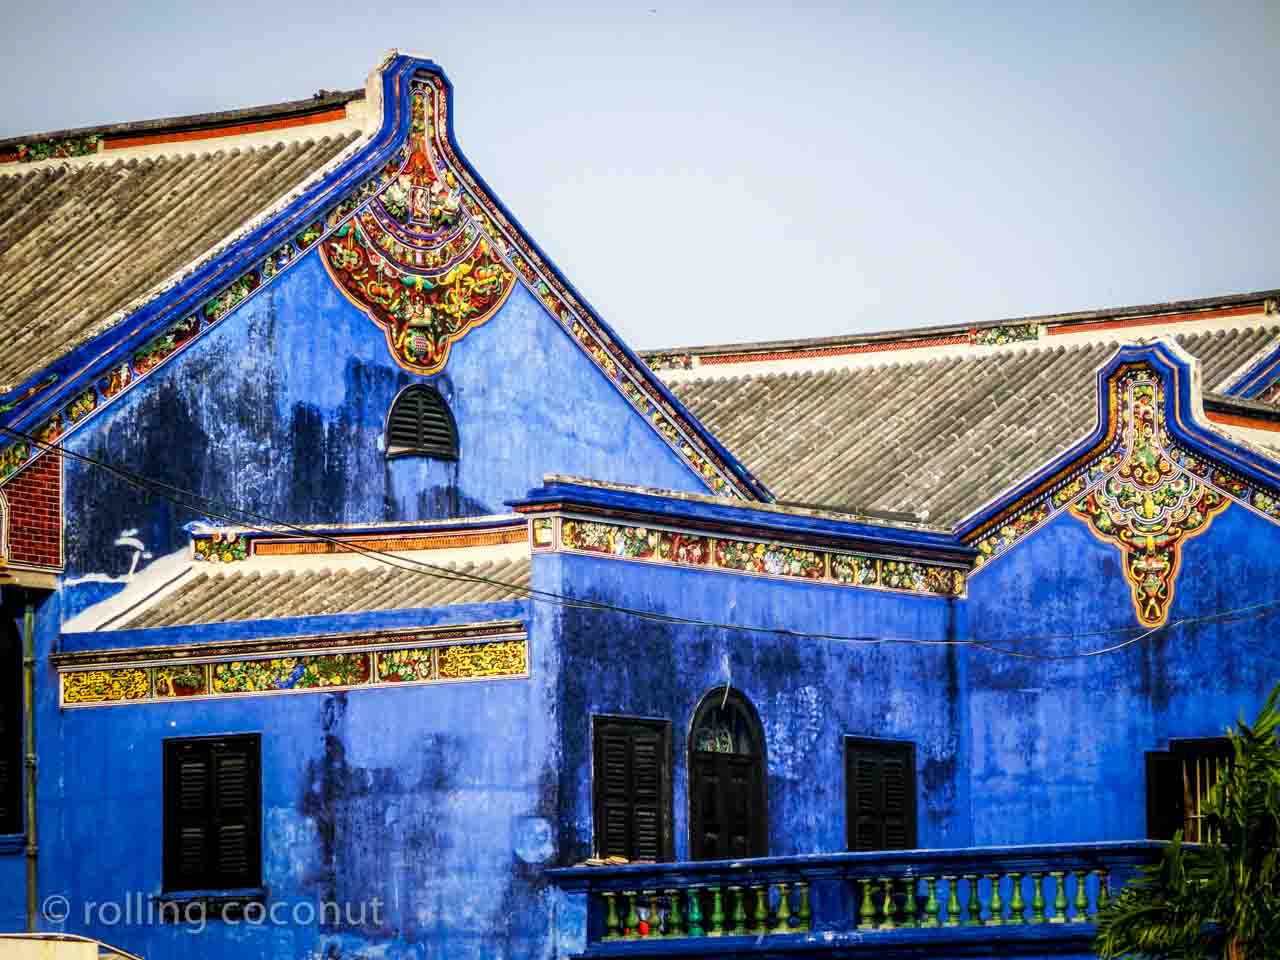 Cheong Fat Tze Mansion Georgetown Malaysia